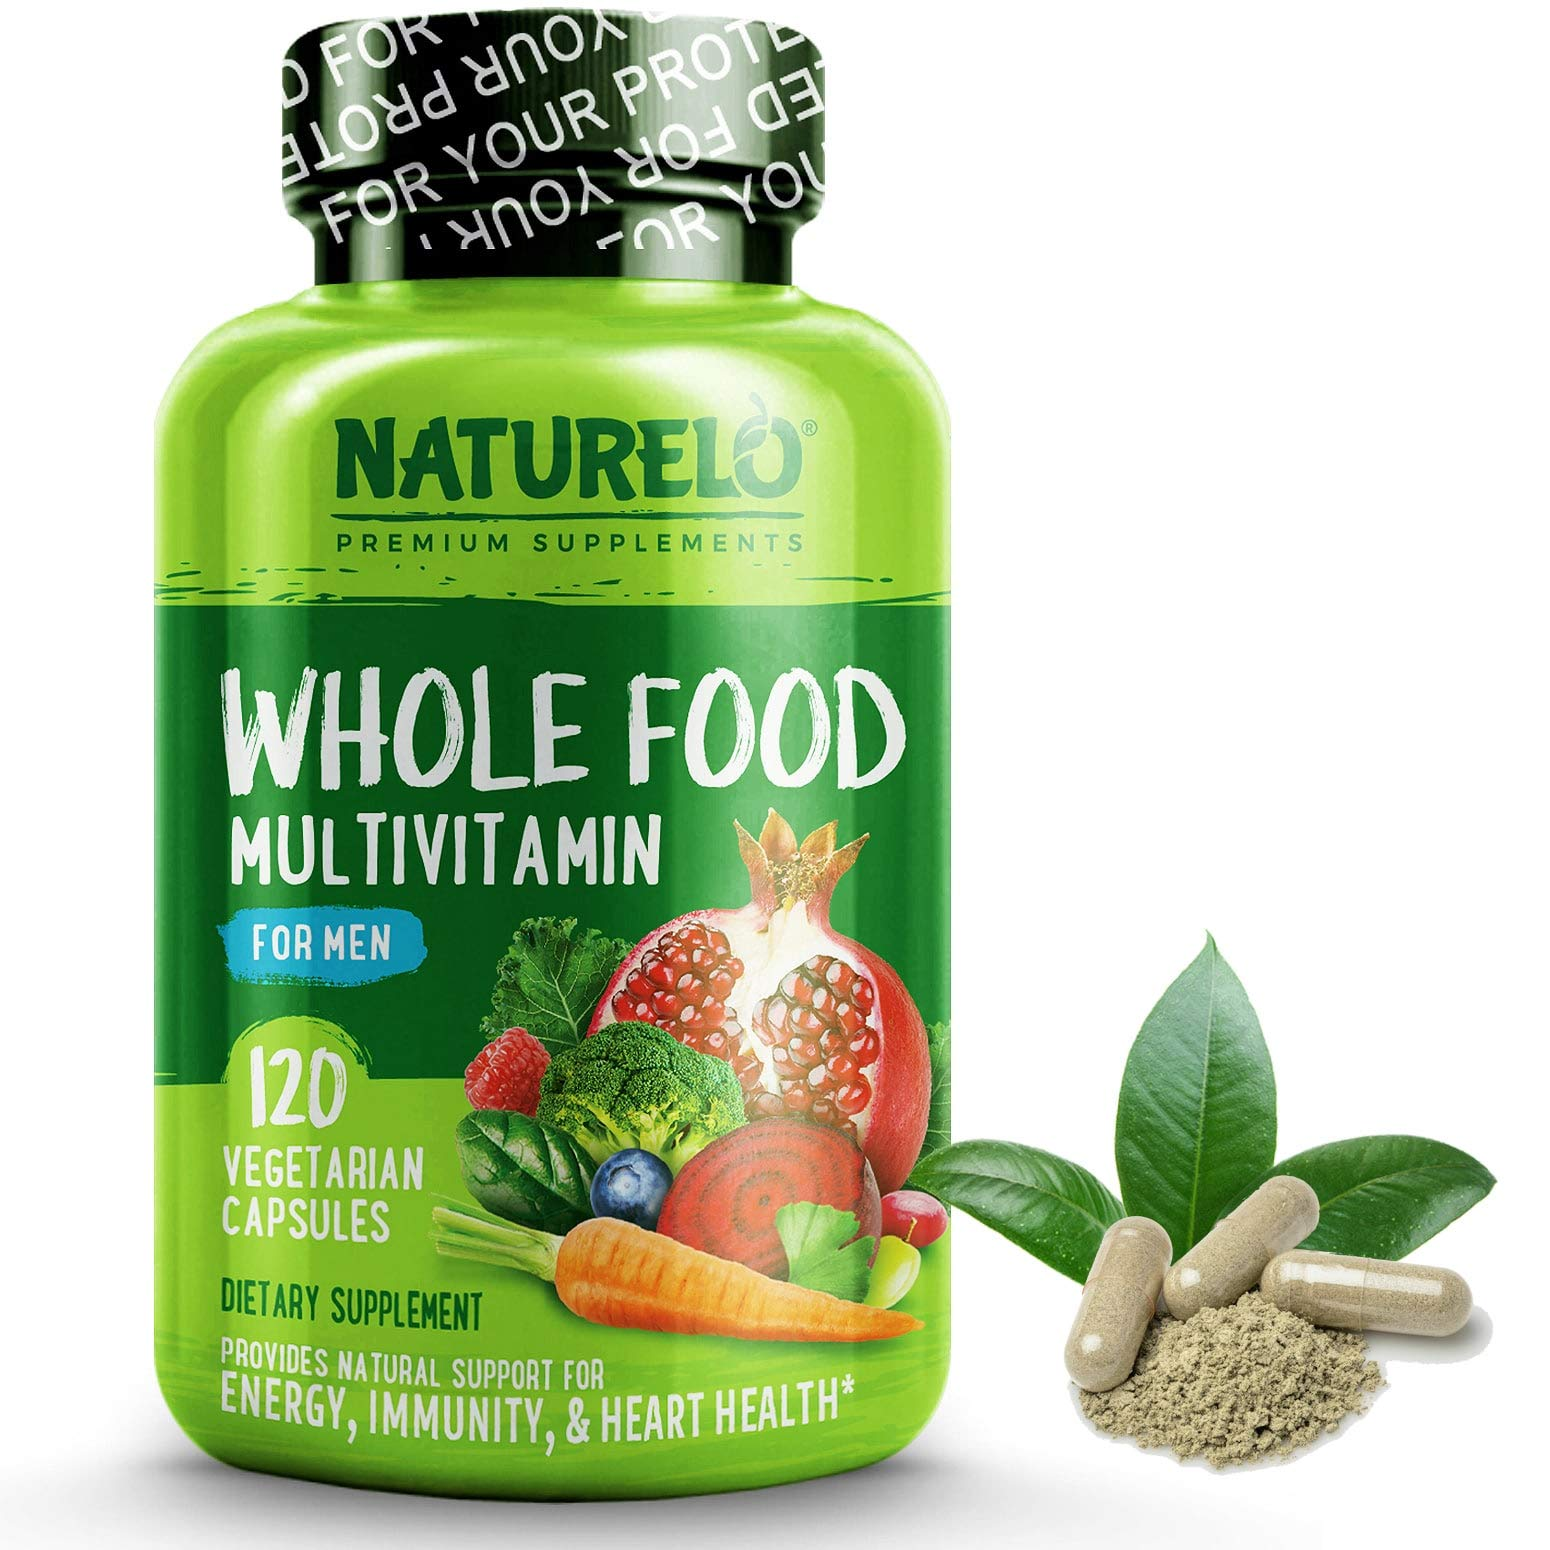 NATURELO Whole Food Multivitamin for Men - with Natural Vitamins, Minerals, Organic Extracts - Vegetarian - Best for Energy, Brain, Heart, Eye Health - 120 Vegan Capsules by NATURELO